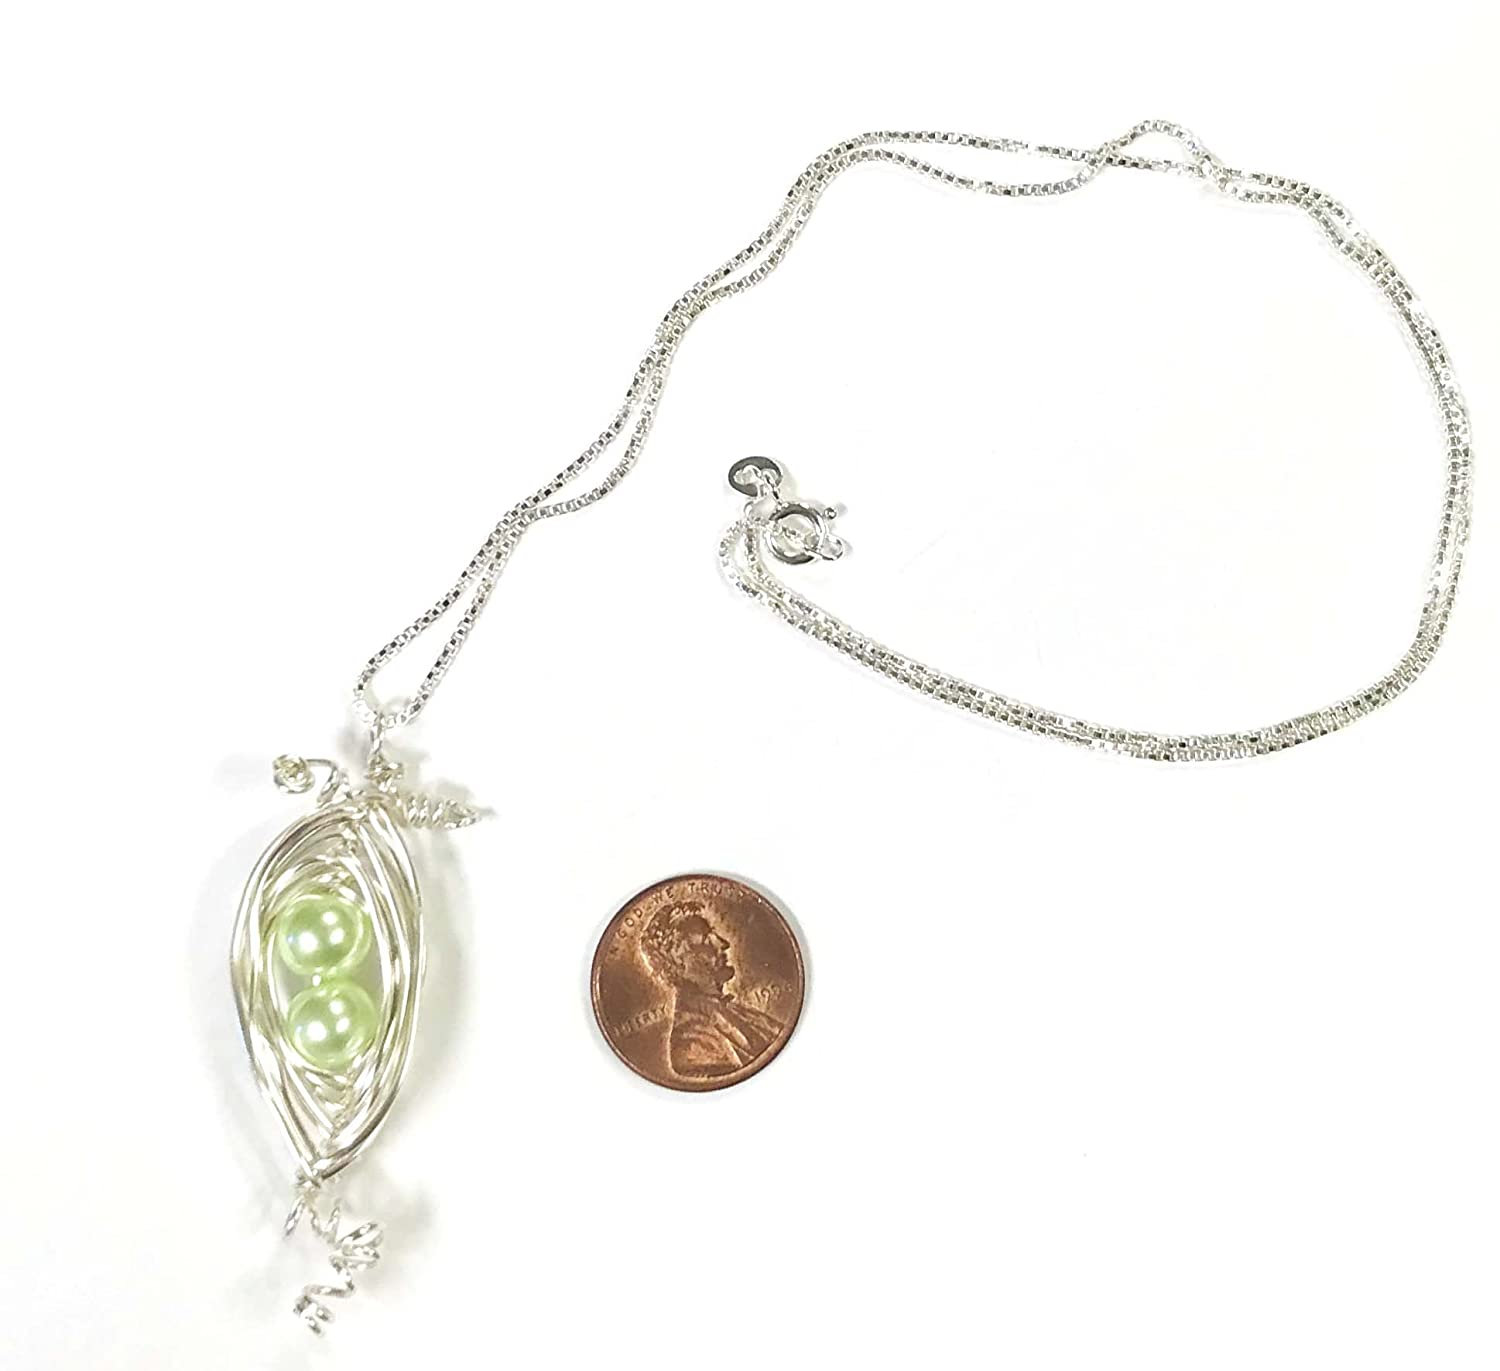 Two Peas in a Pod Hand Wire Wrapped Necklace with 2 mint glass pearl peas, comes on a 20 inch sterling silver box chain